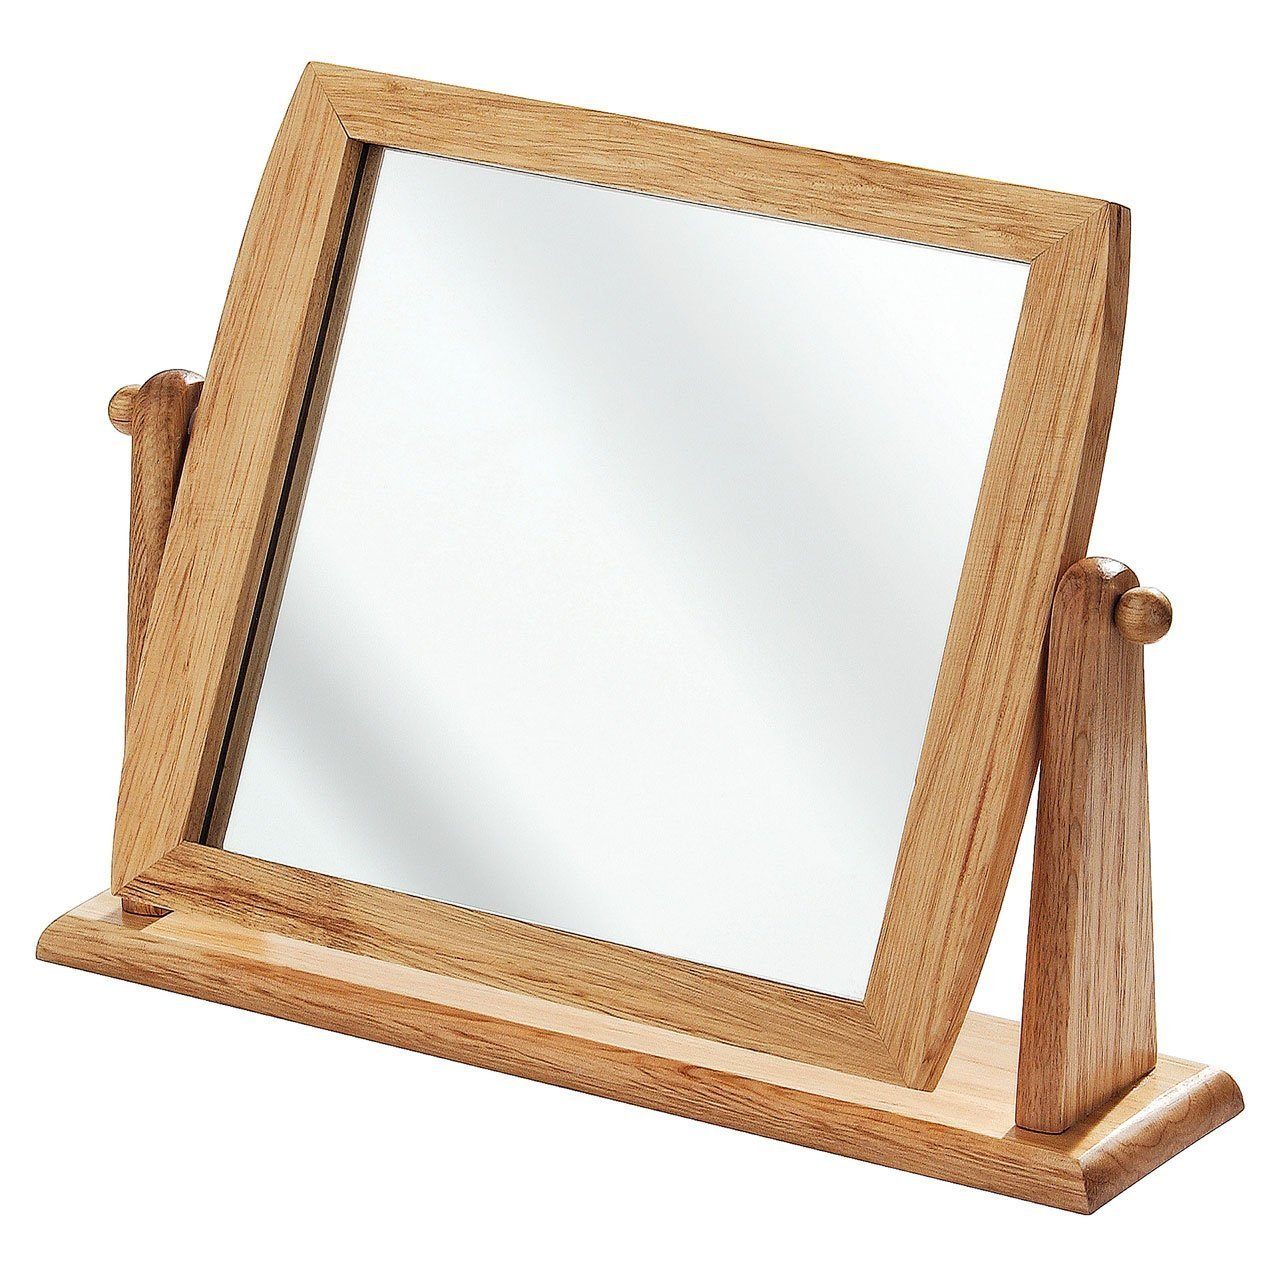 Wooden Frame Table Mirror with Stand by supersalestore Apollo Furnishings